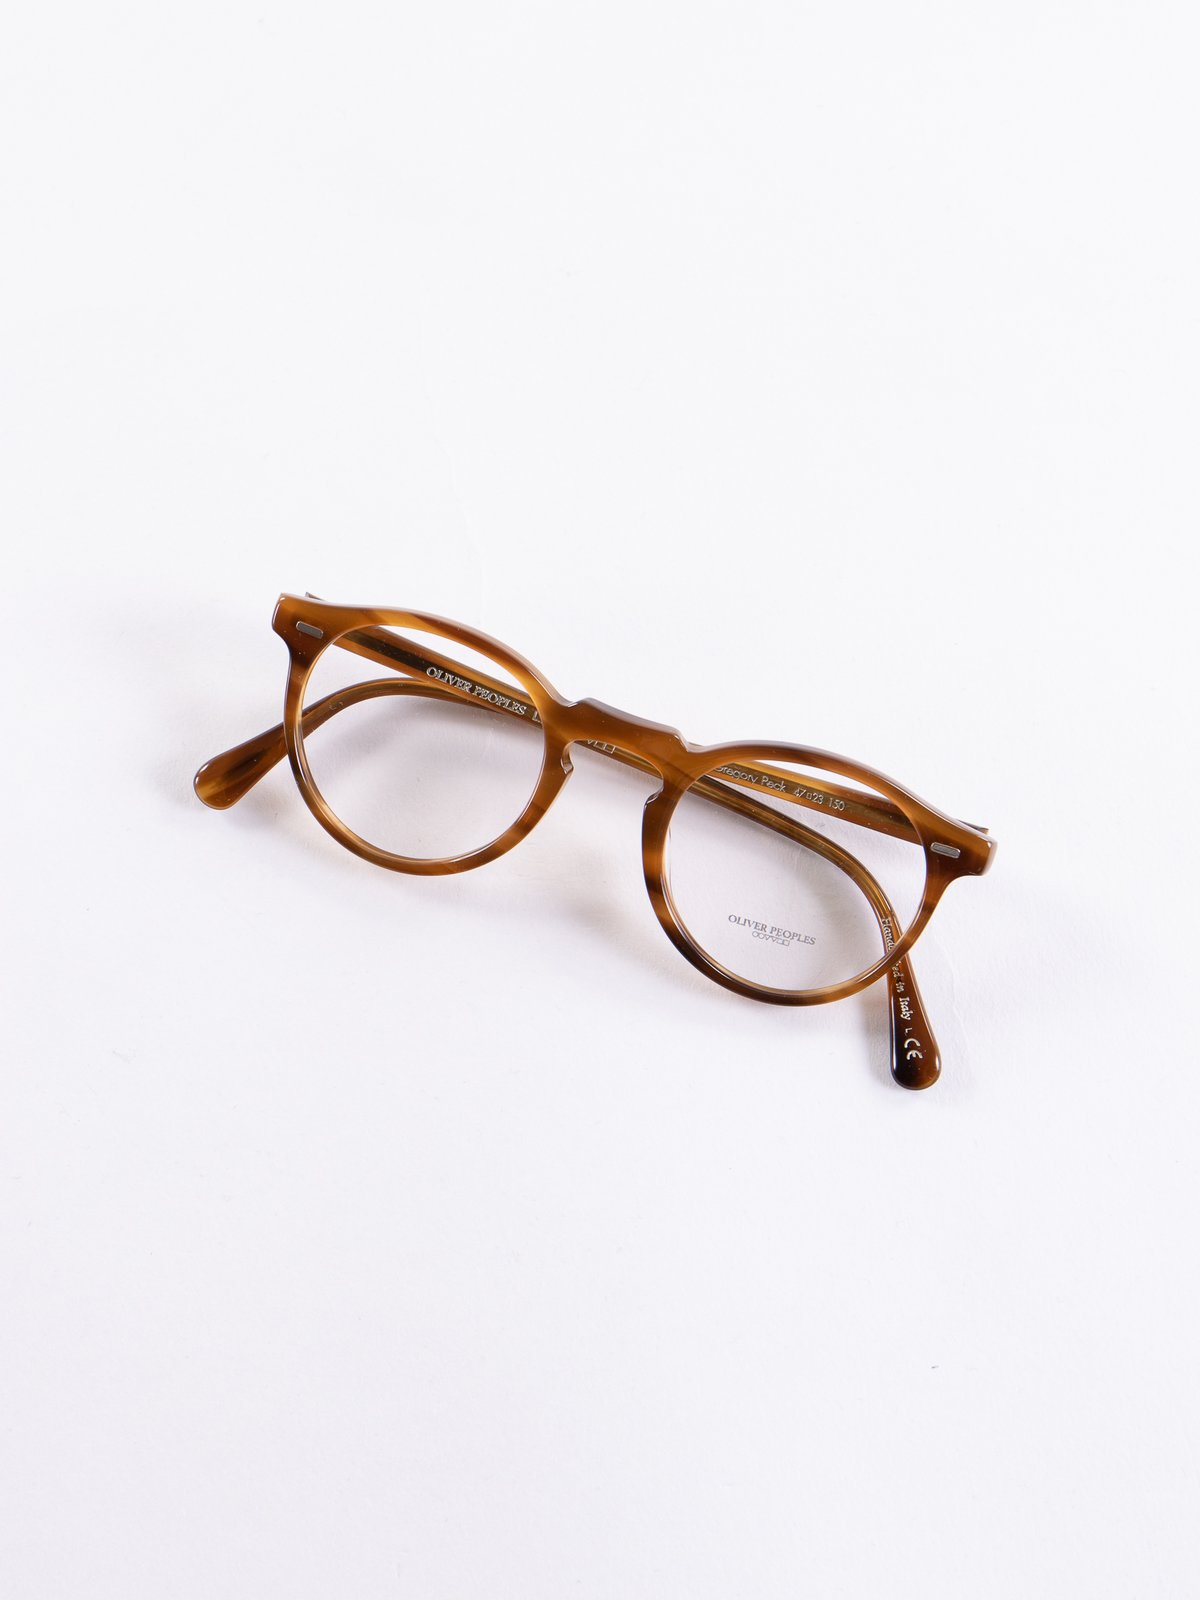 Raintree Gregory Peck Optical Frame - Image 1